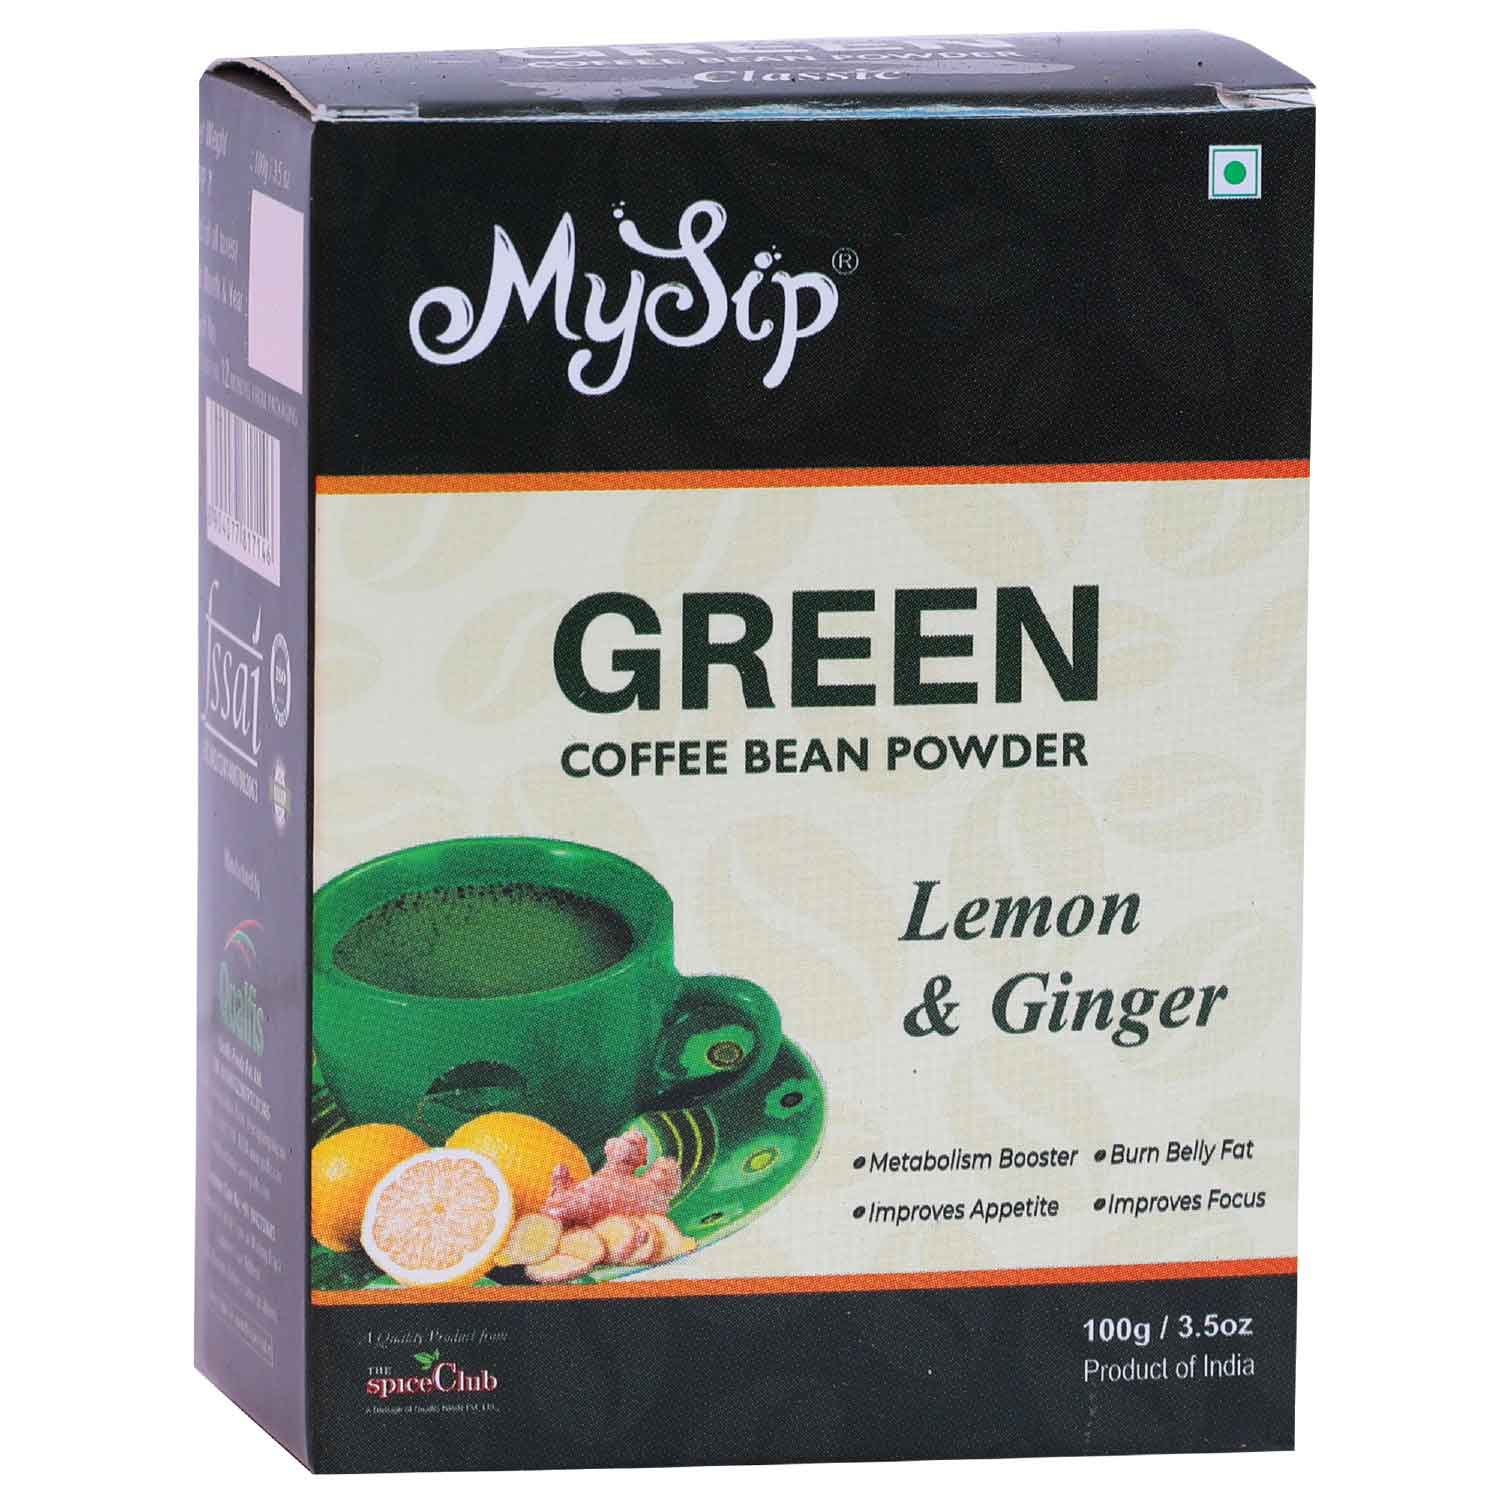 Green Coffee Bean Powder Lemon & Ginger – 100g